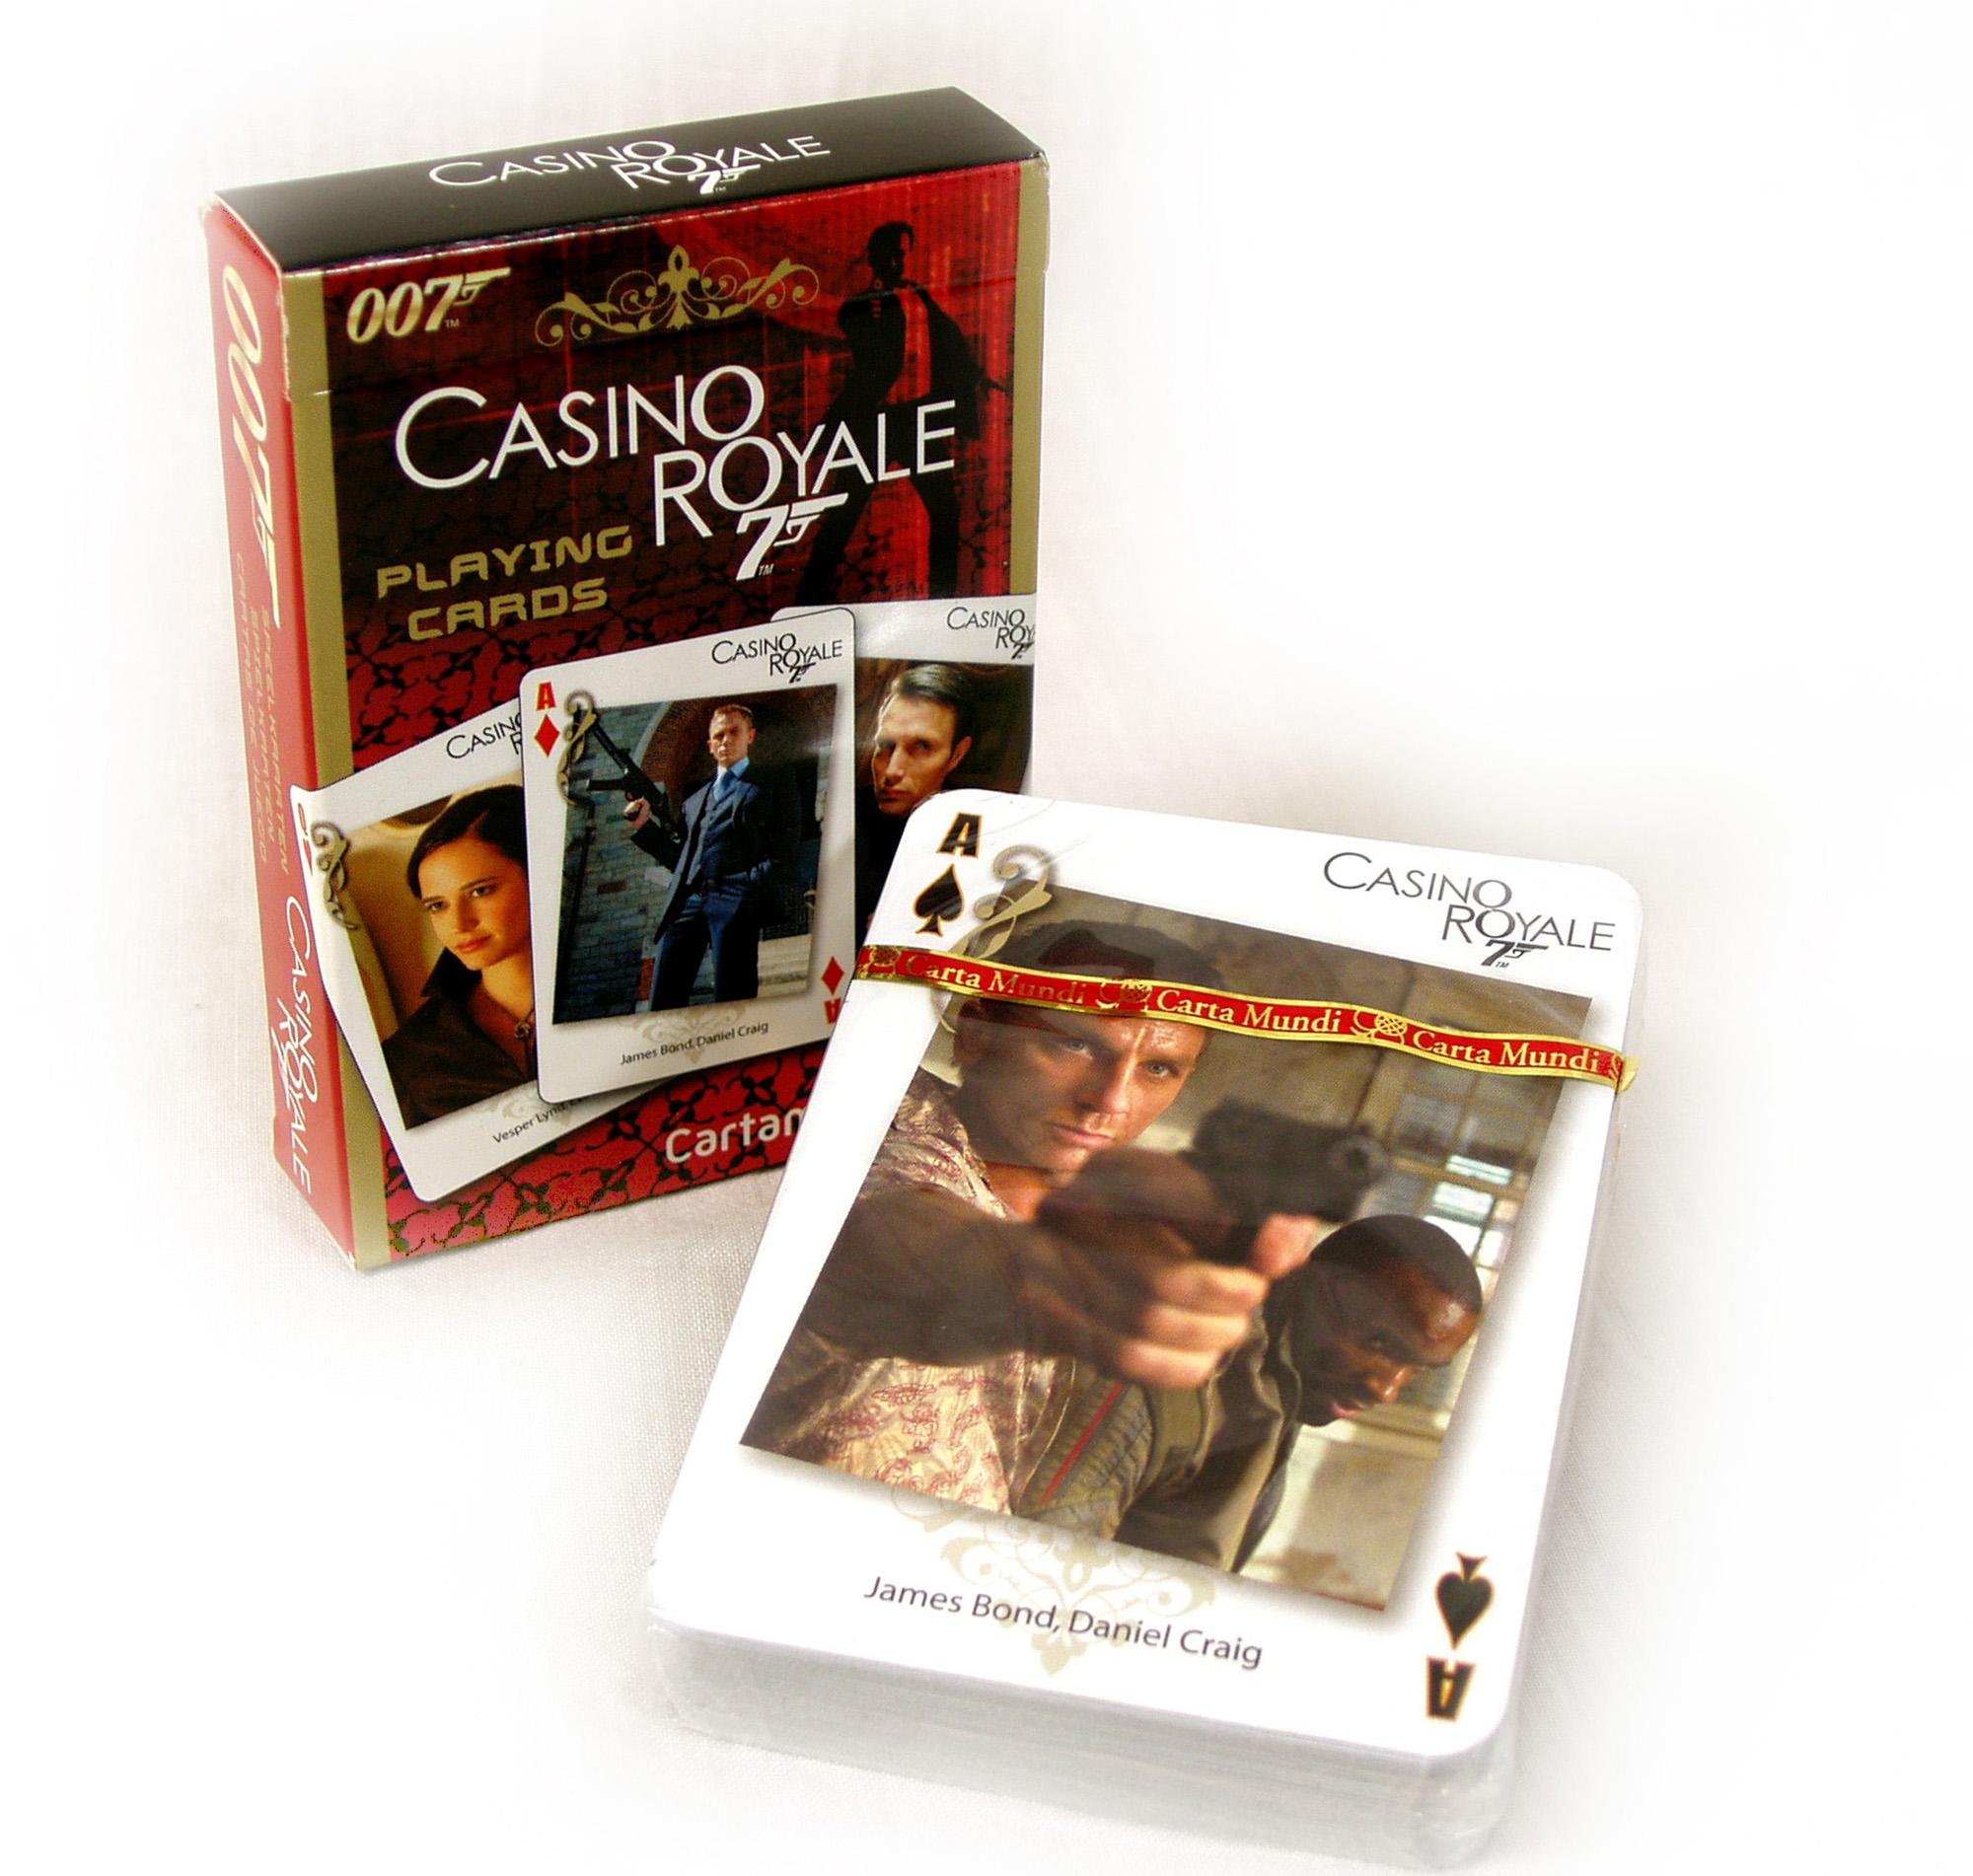 james bond casino royale full movie online payment methods